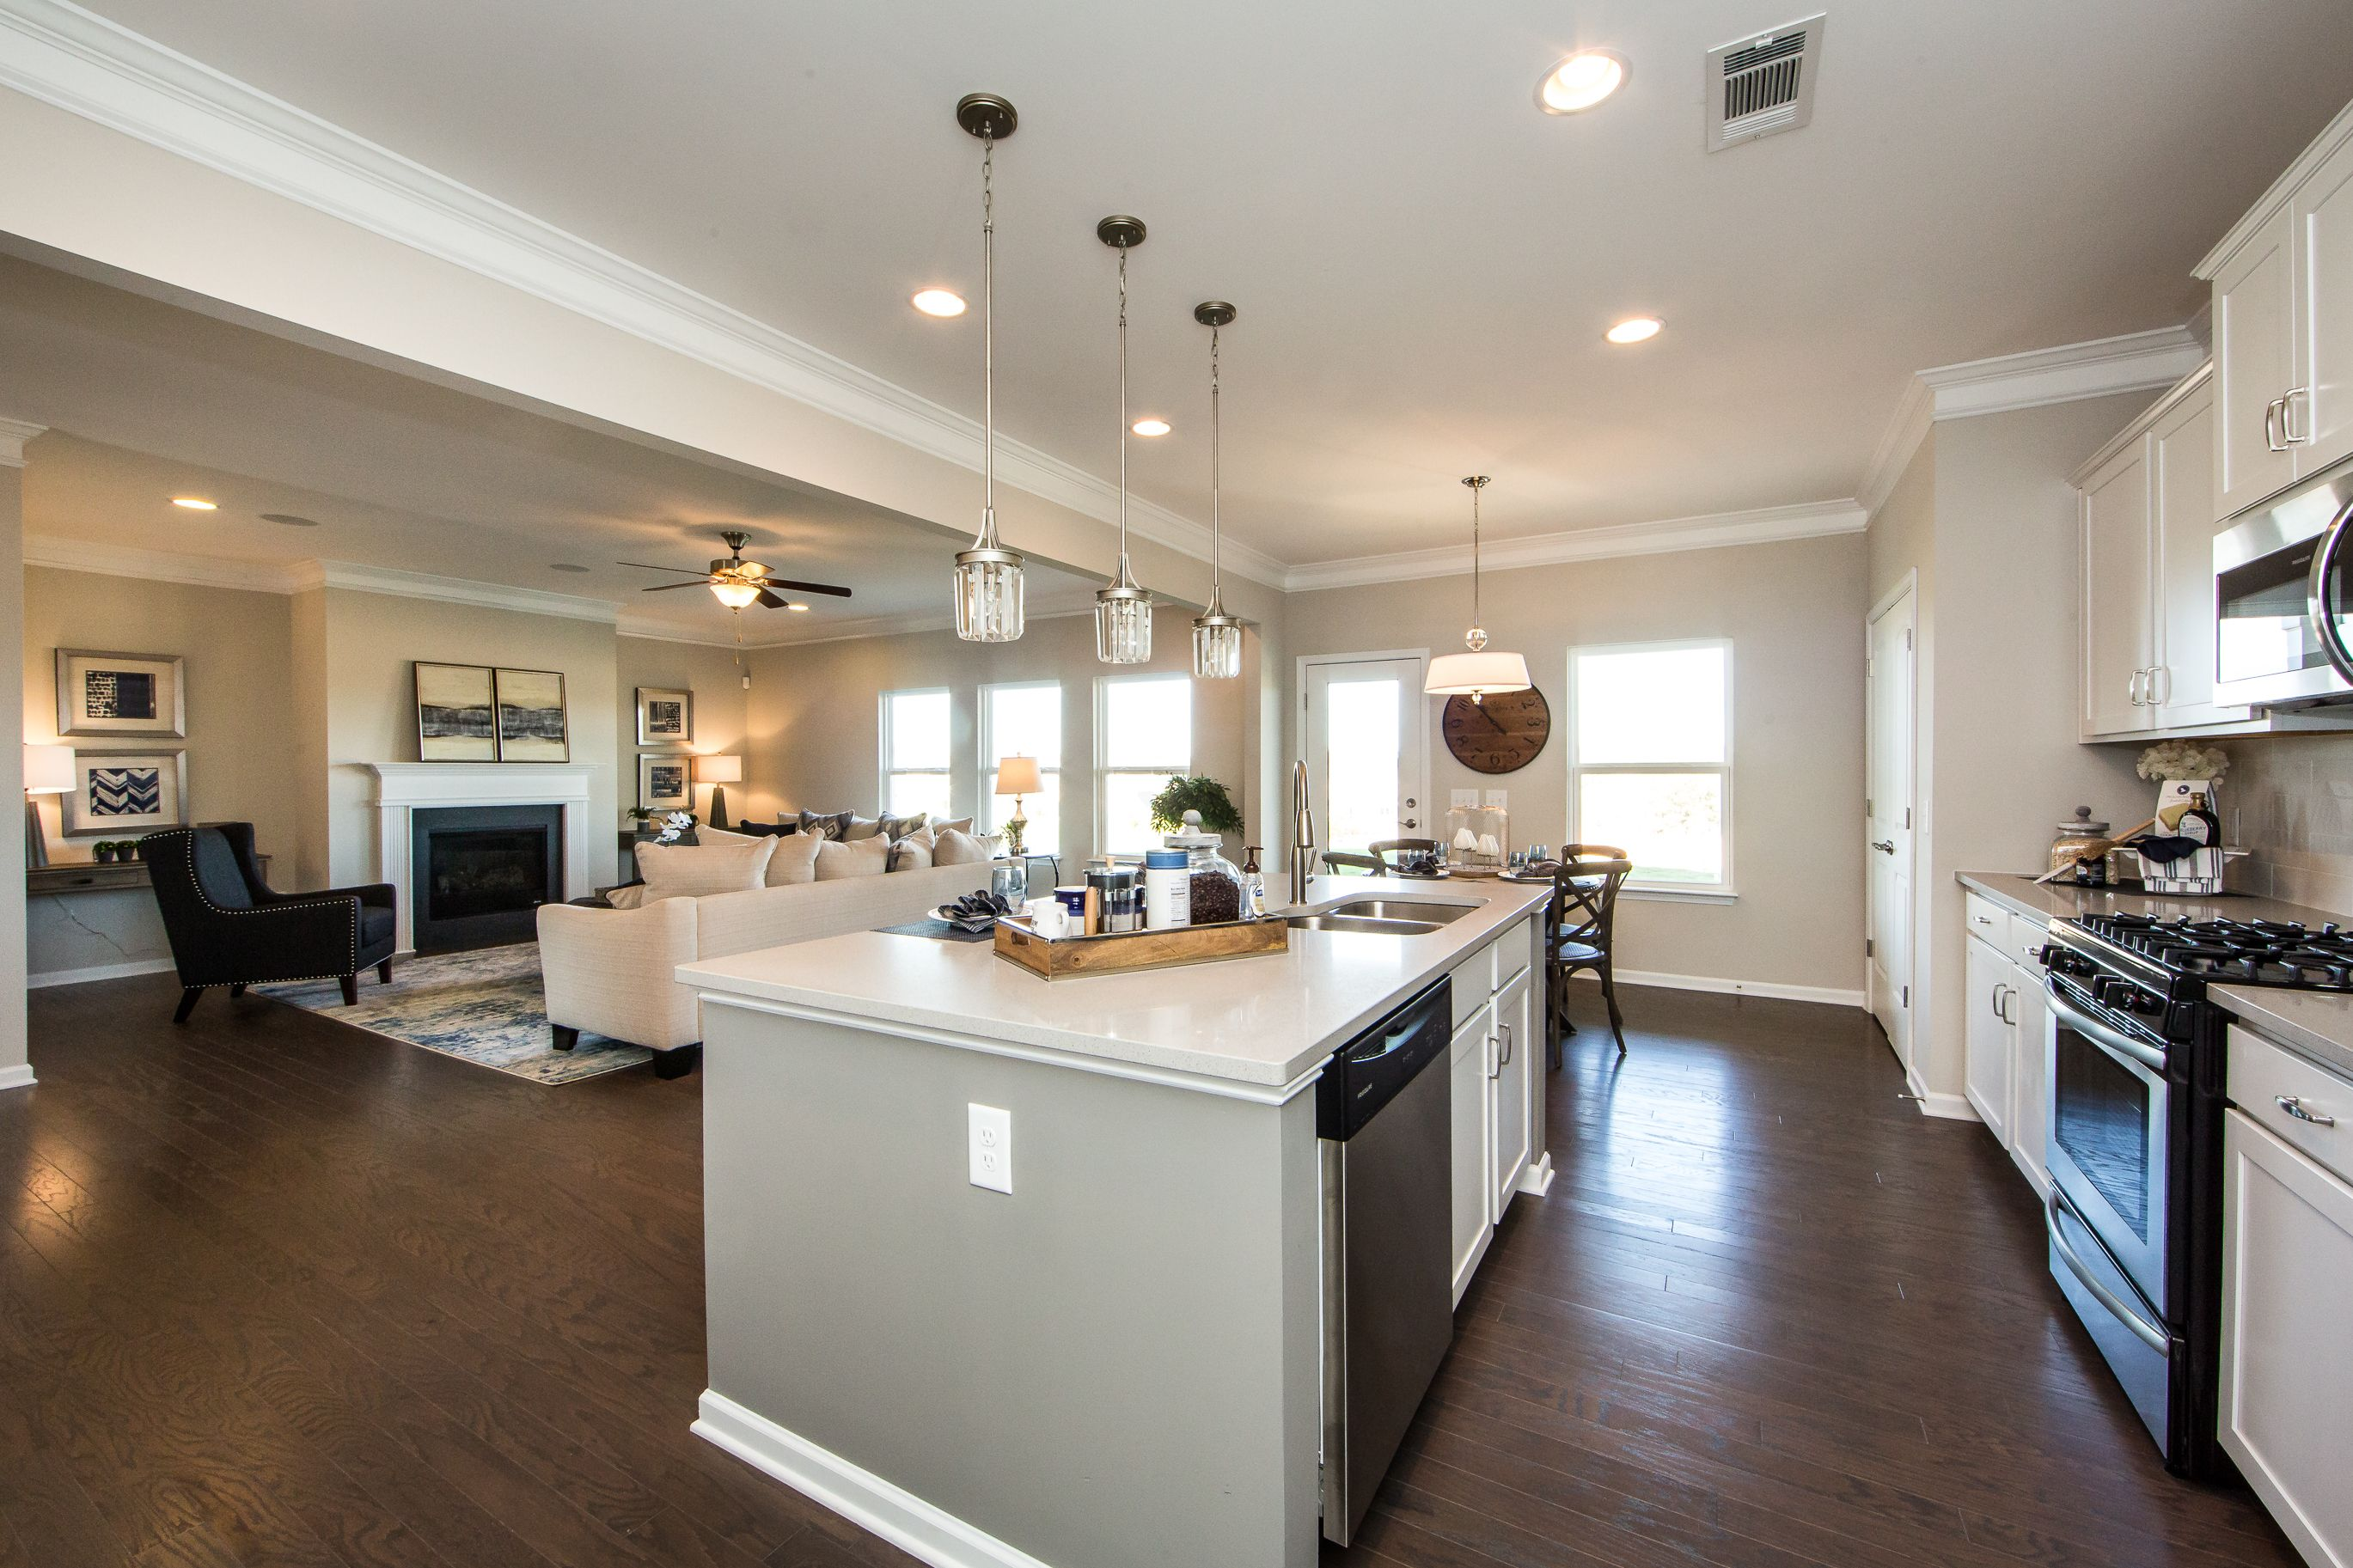 Kitchen featured in The Buffington By Smith Douglas Homes in Huntsville, AL